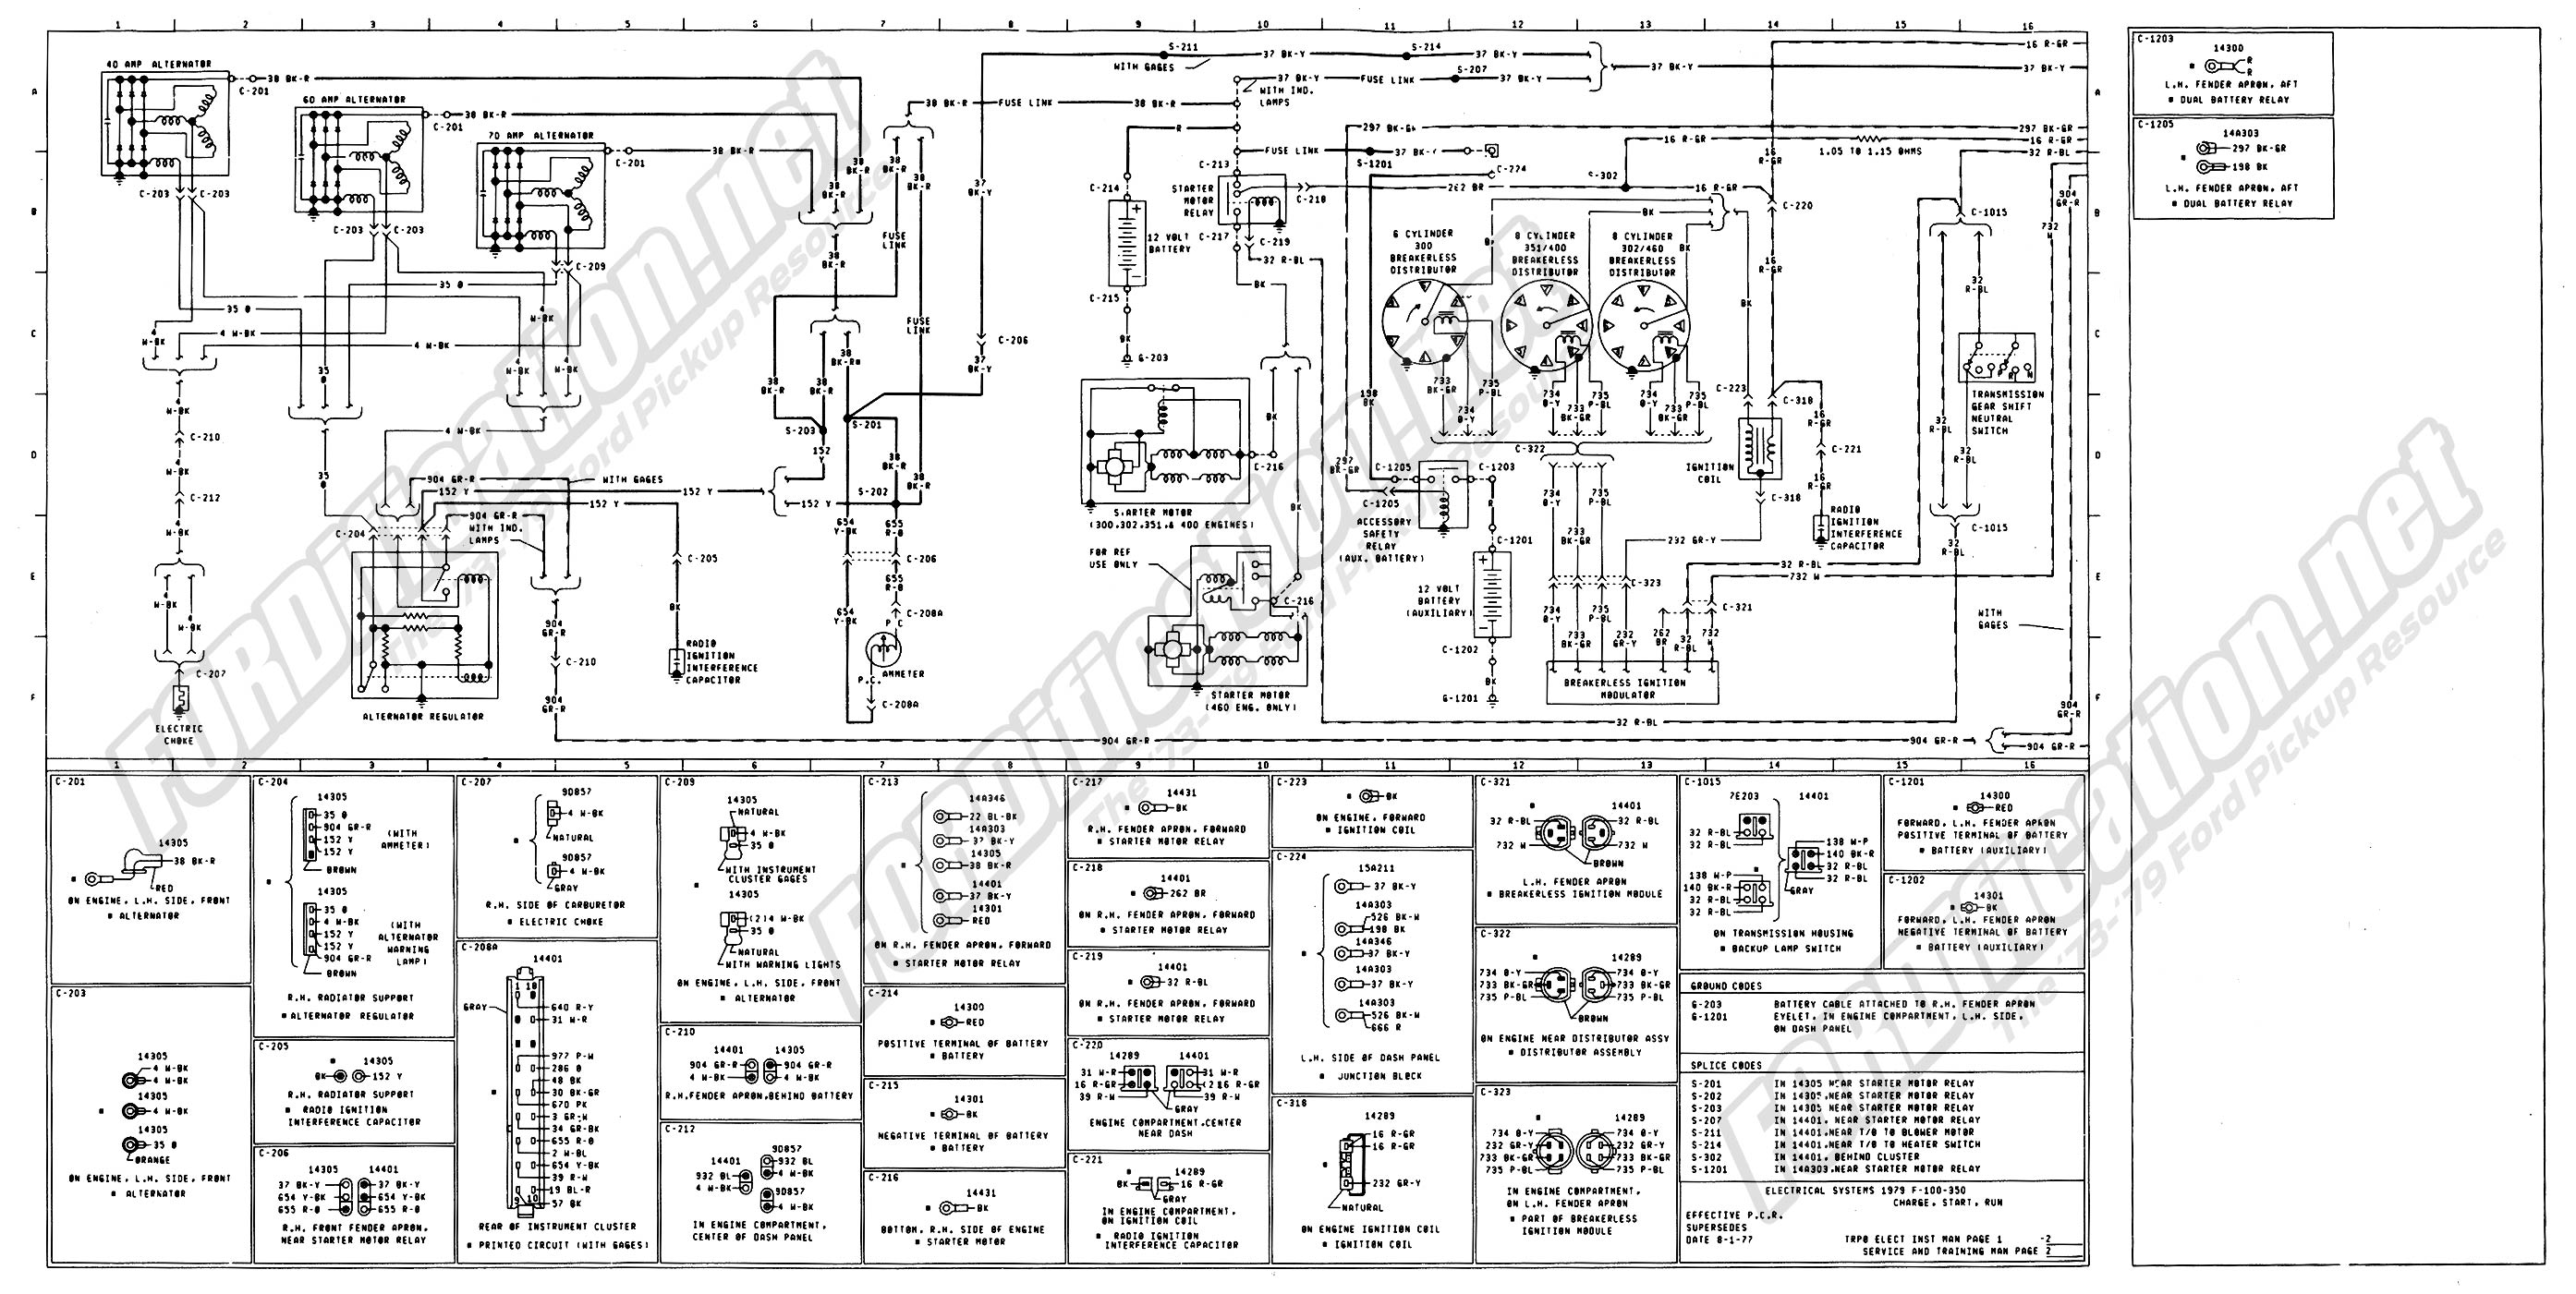 1973 1979 ford truck wiring diagrams schematics fordification net rh fordification net 1979 ford f150 wiring diagram Ford F-150 Starter Wiring Diagram